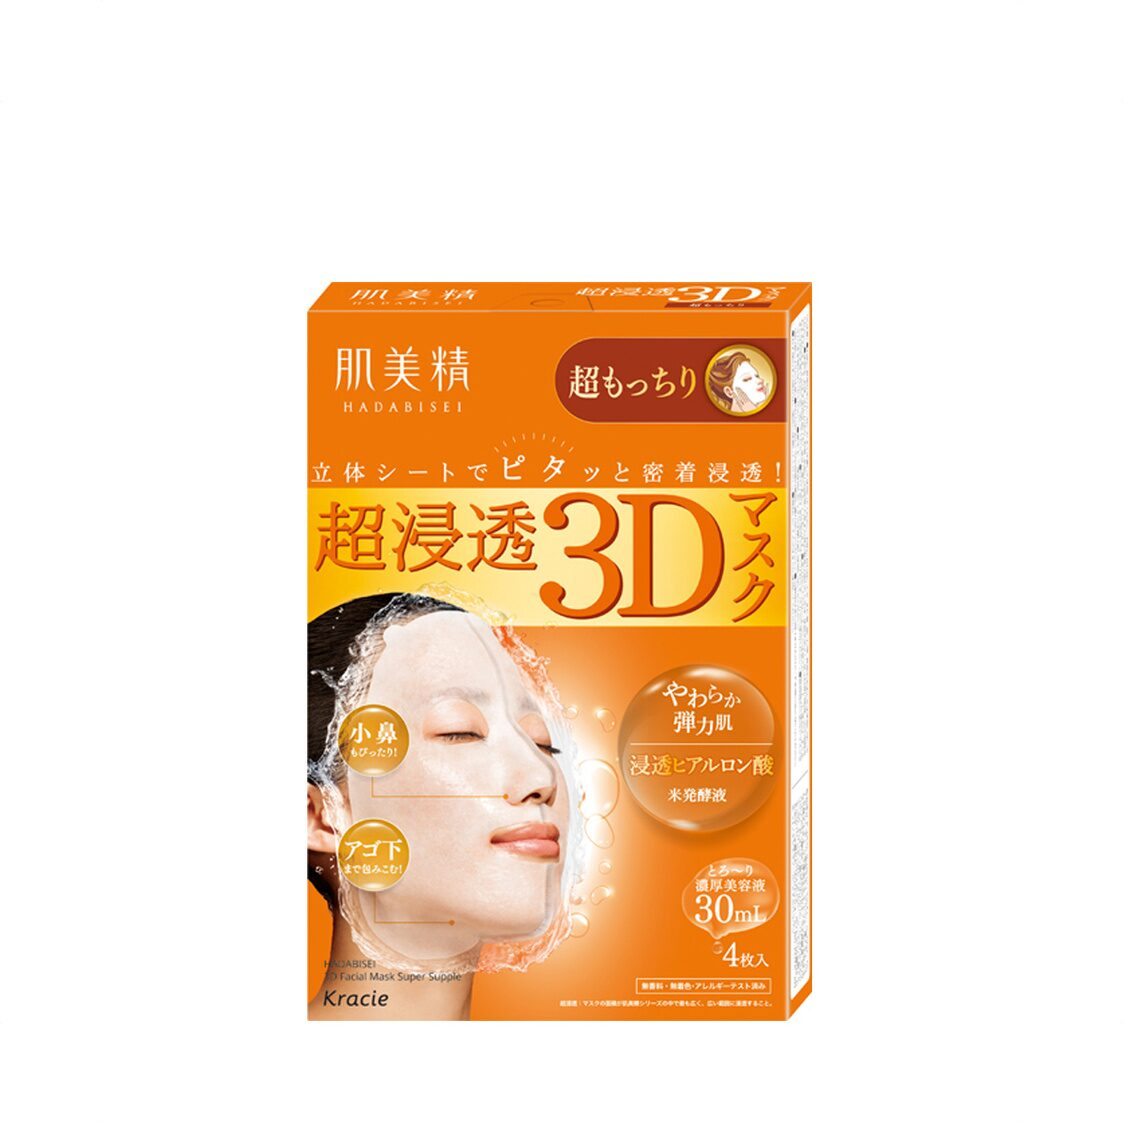 3D Face Mask Super Suppleness 4 Pieces